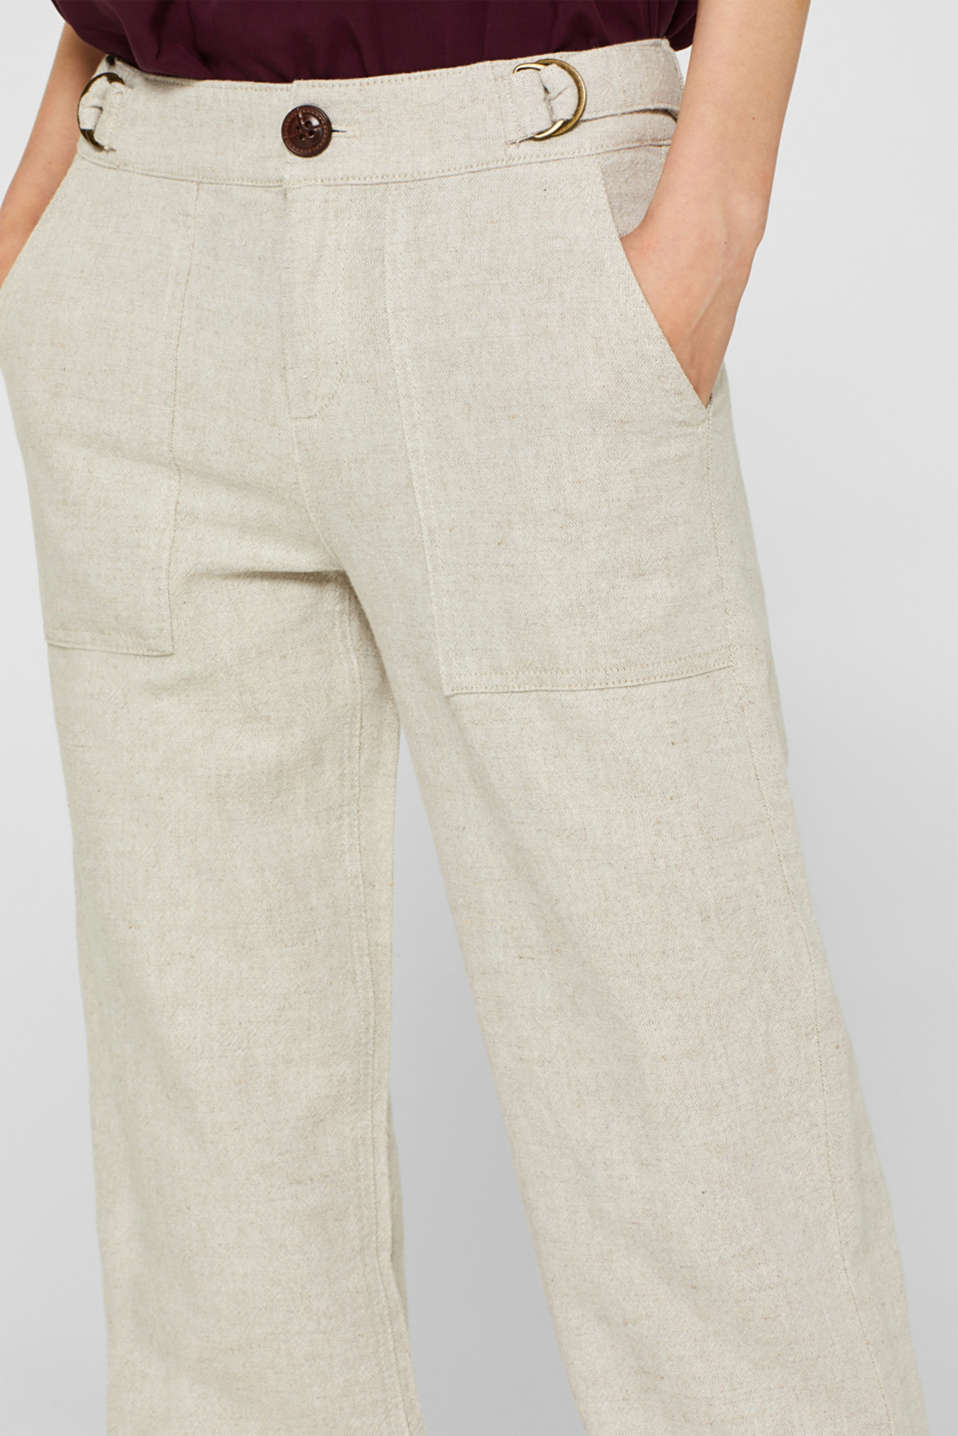 Pants woven, CREAM BEIGE, detail image number 2